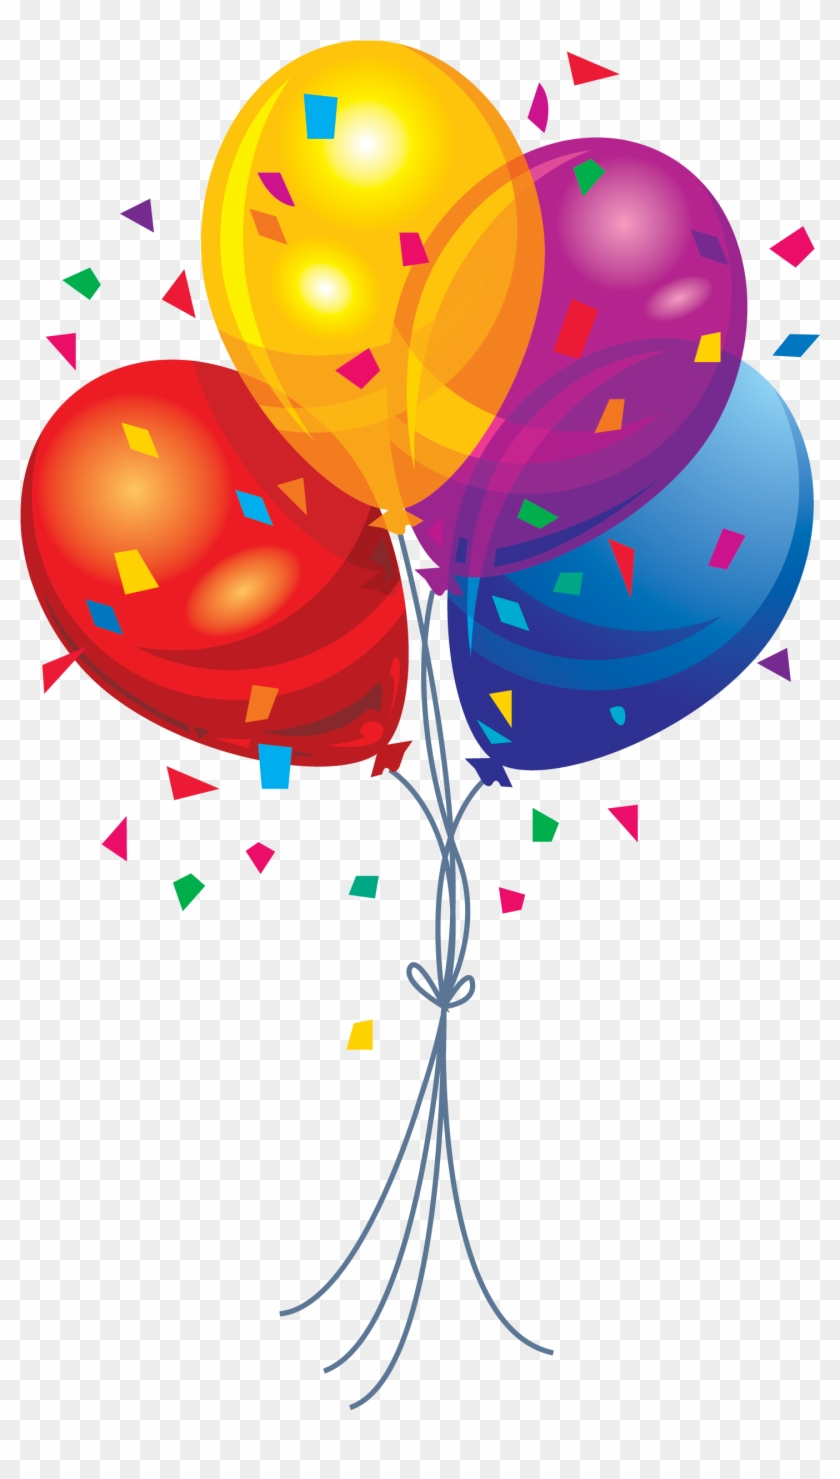 Happy Birthday Balloons Clipart Birthday Balloons Png Free Transparent Png Clipart Images Download